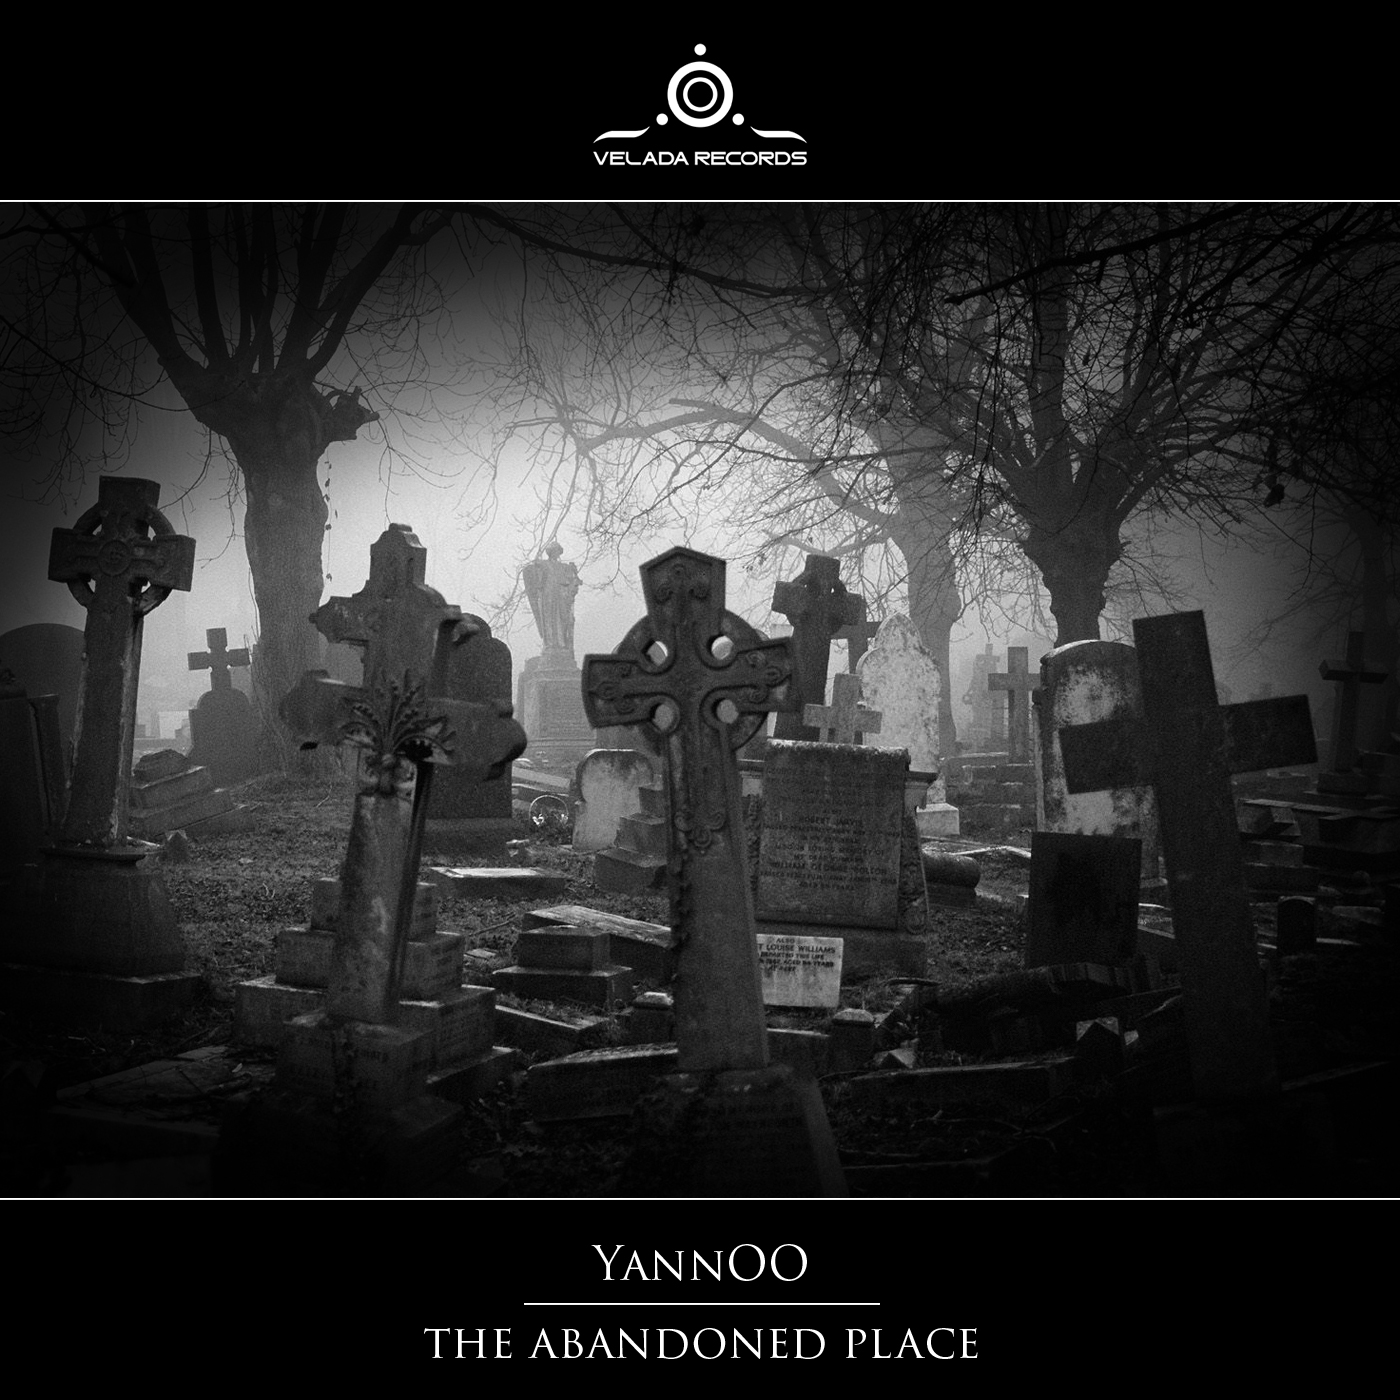 The Abandoned Place Image